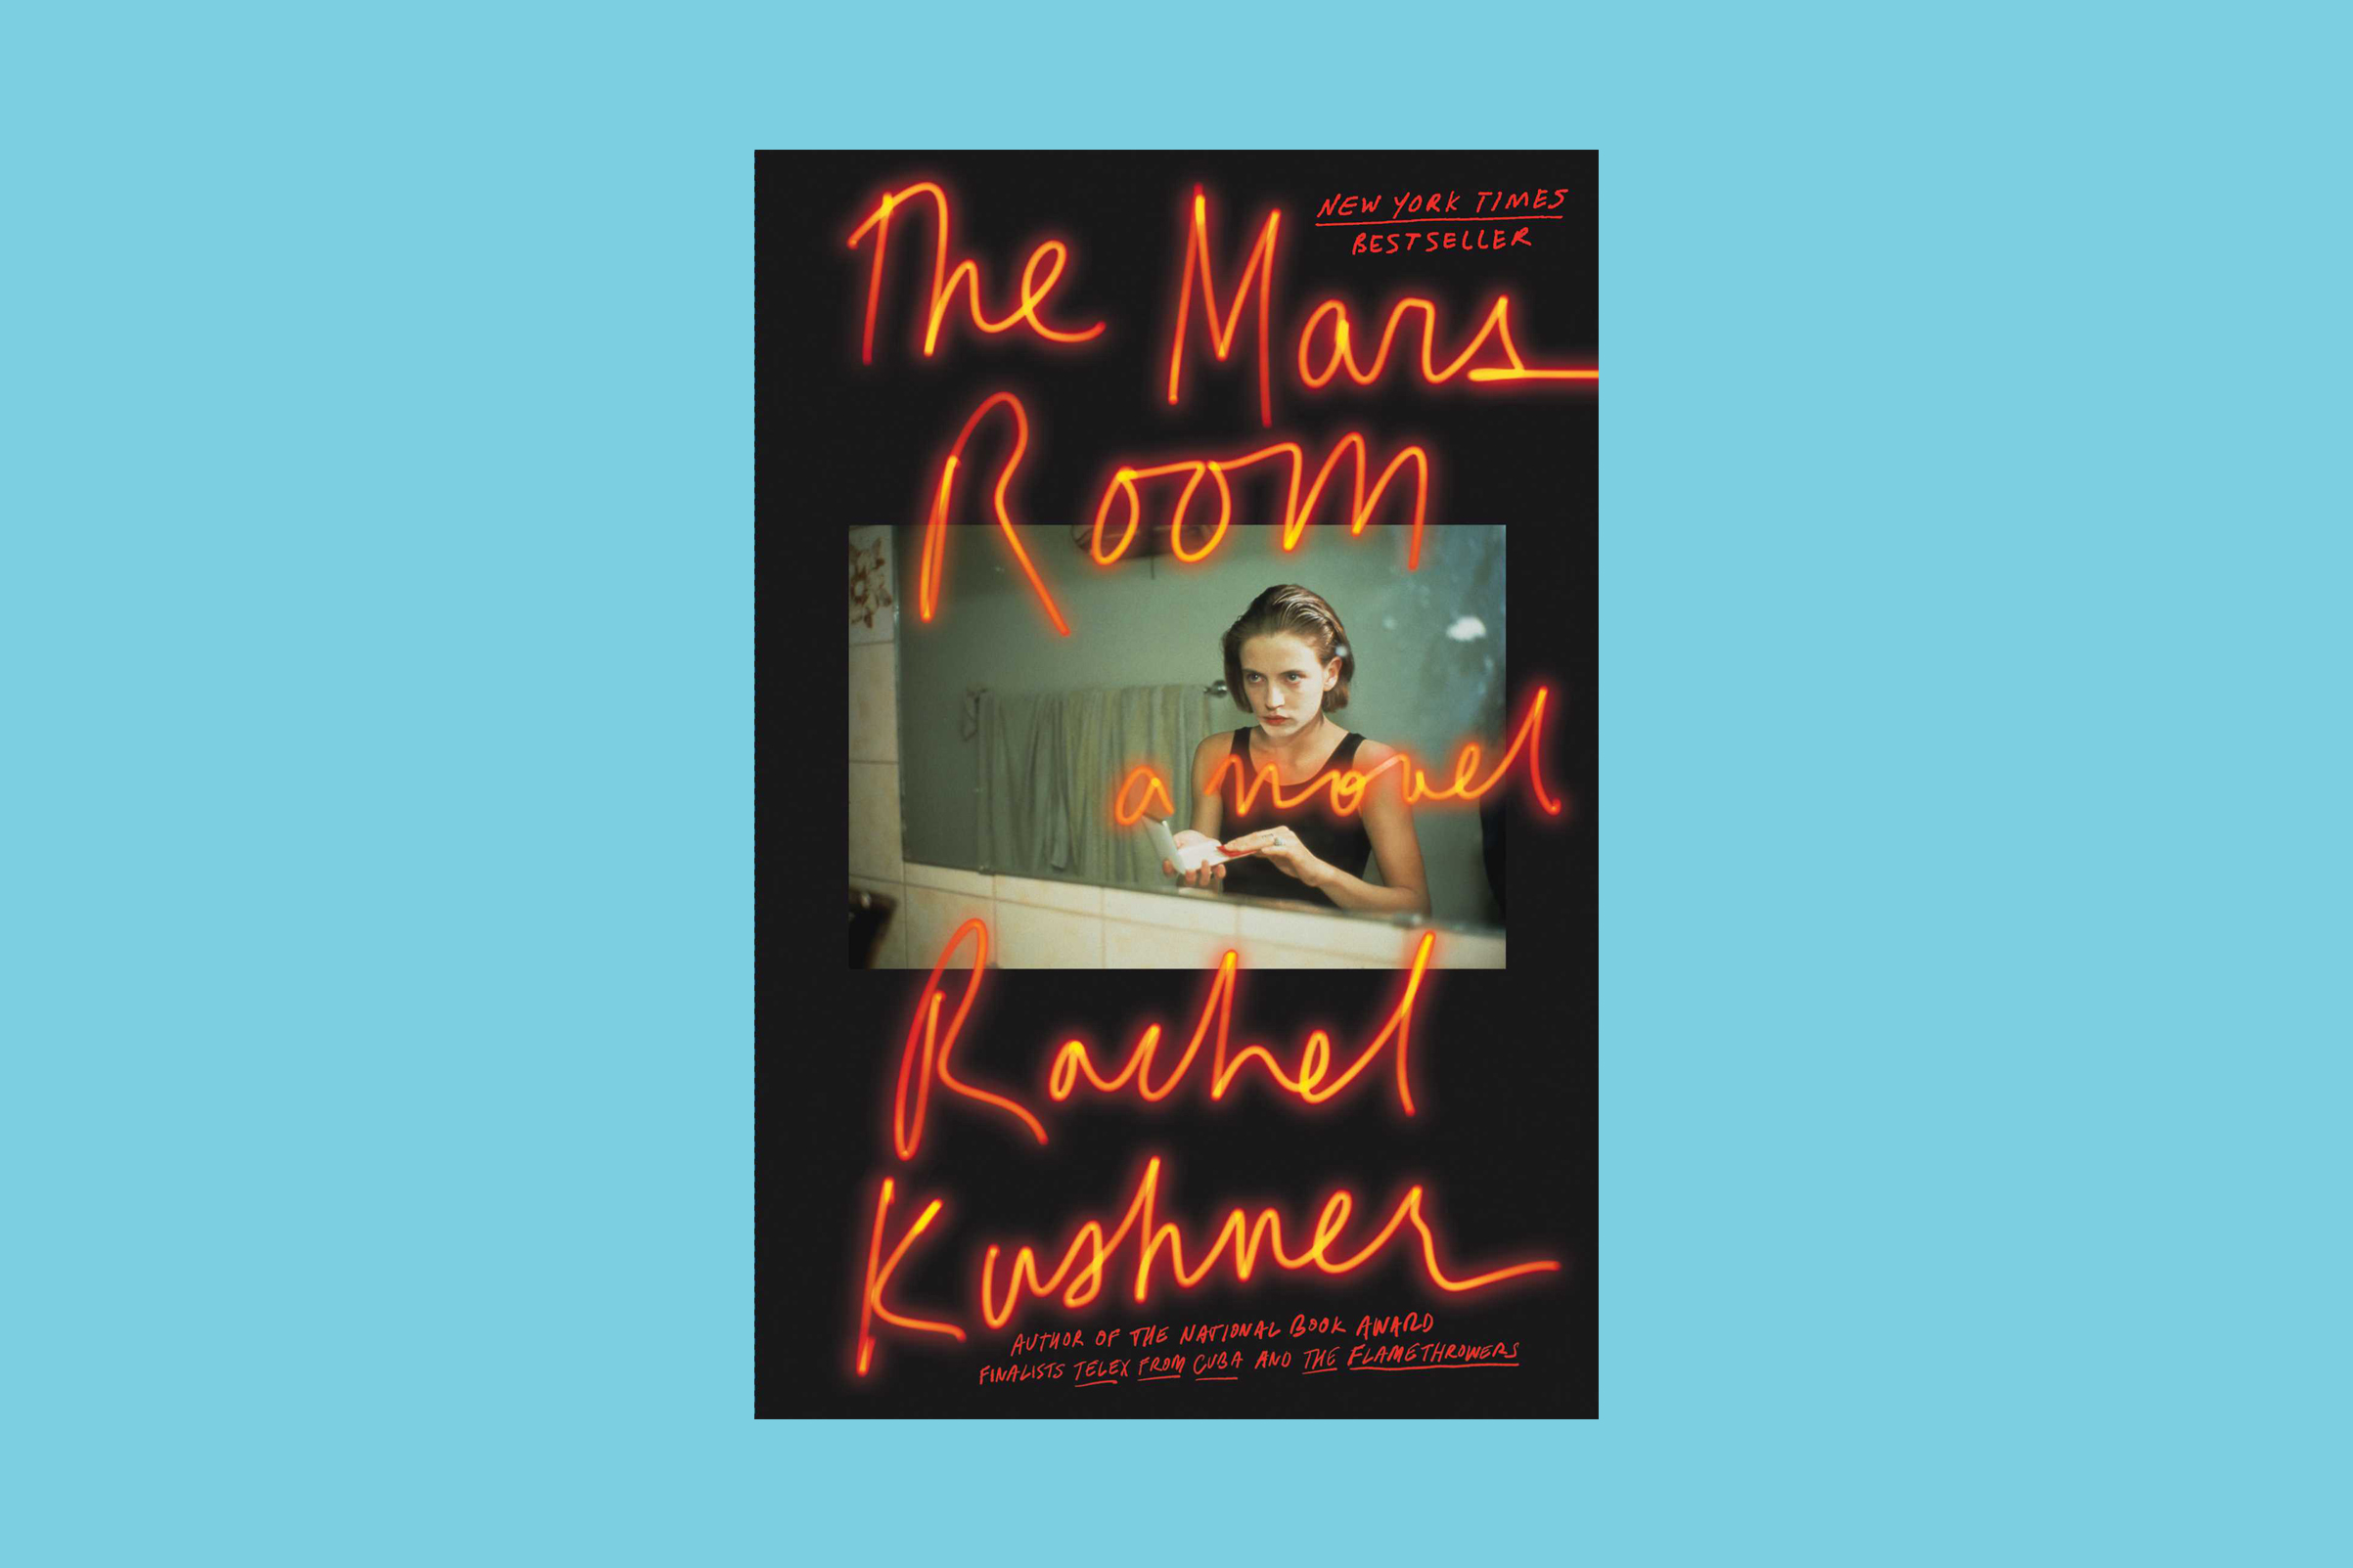 The Mars Room, Rachel Kushner, Scribner